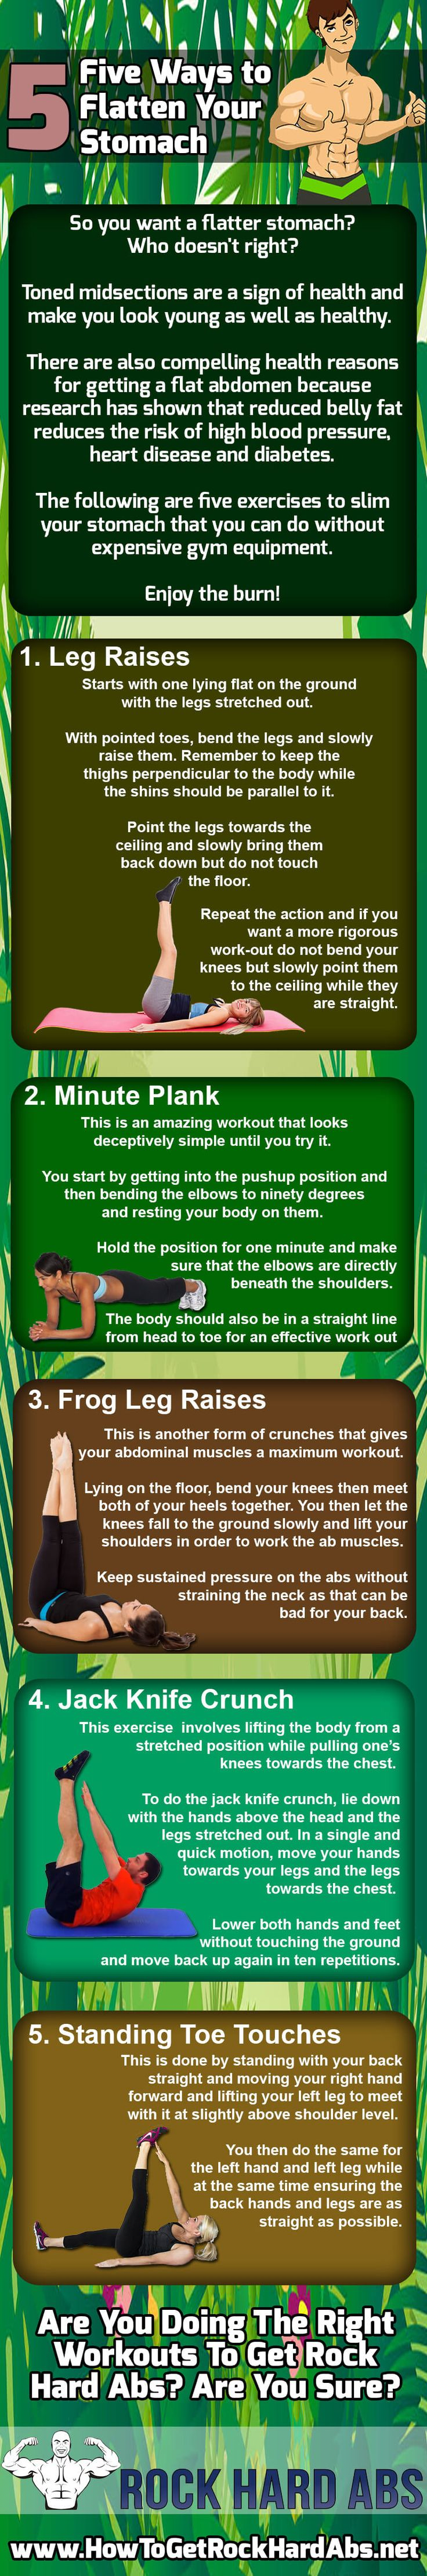 As bad as belly fat is to our self-esteem losing it isn't as hard as many would make you to believe. The key to flattening your abs is simple. Do enough of the right kind of exercises and you will lose belly flat. In this infographic we share 5 exercises that are good ones you need to include in your workout regimen. Make sure to let us know how things work out for you!